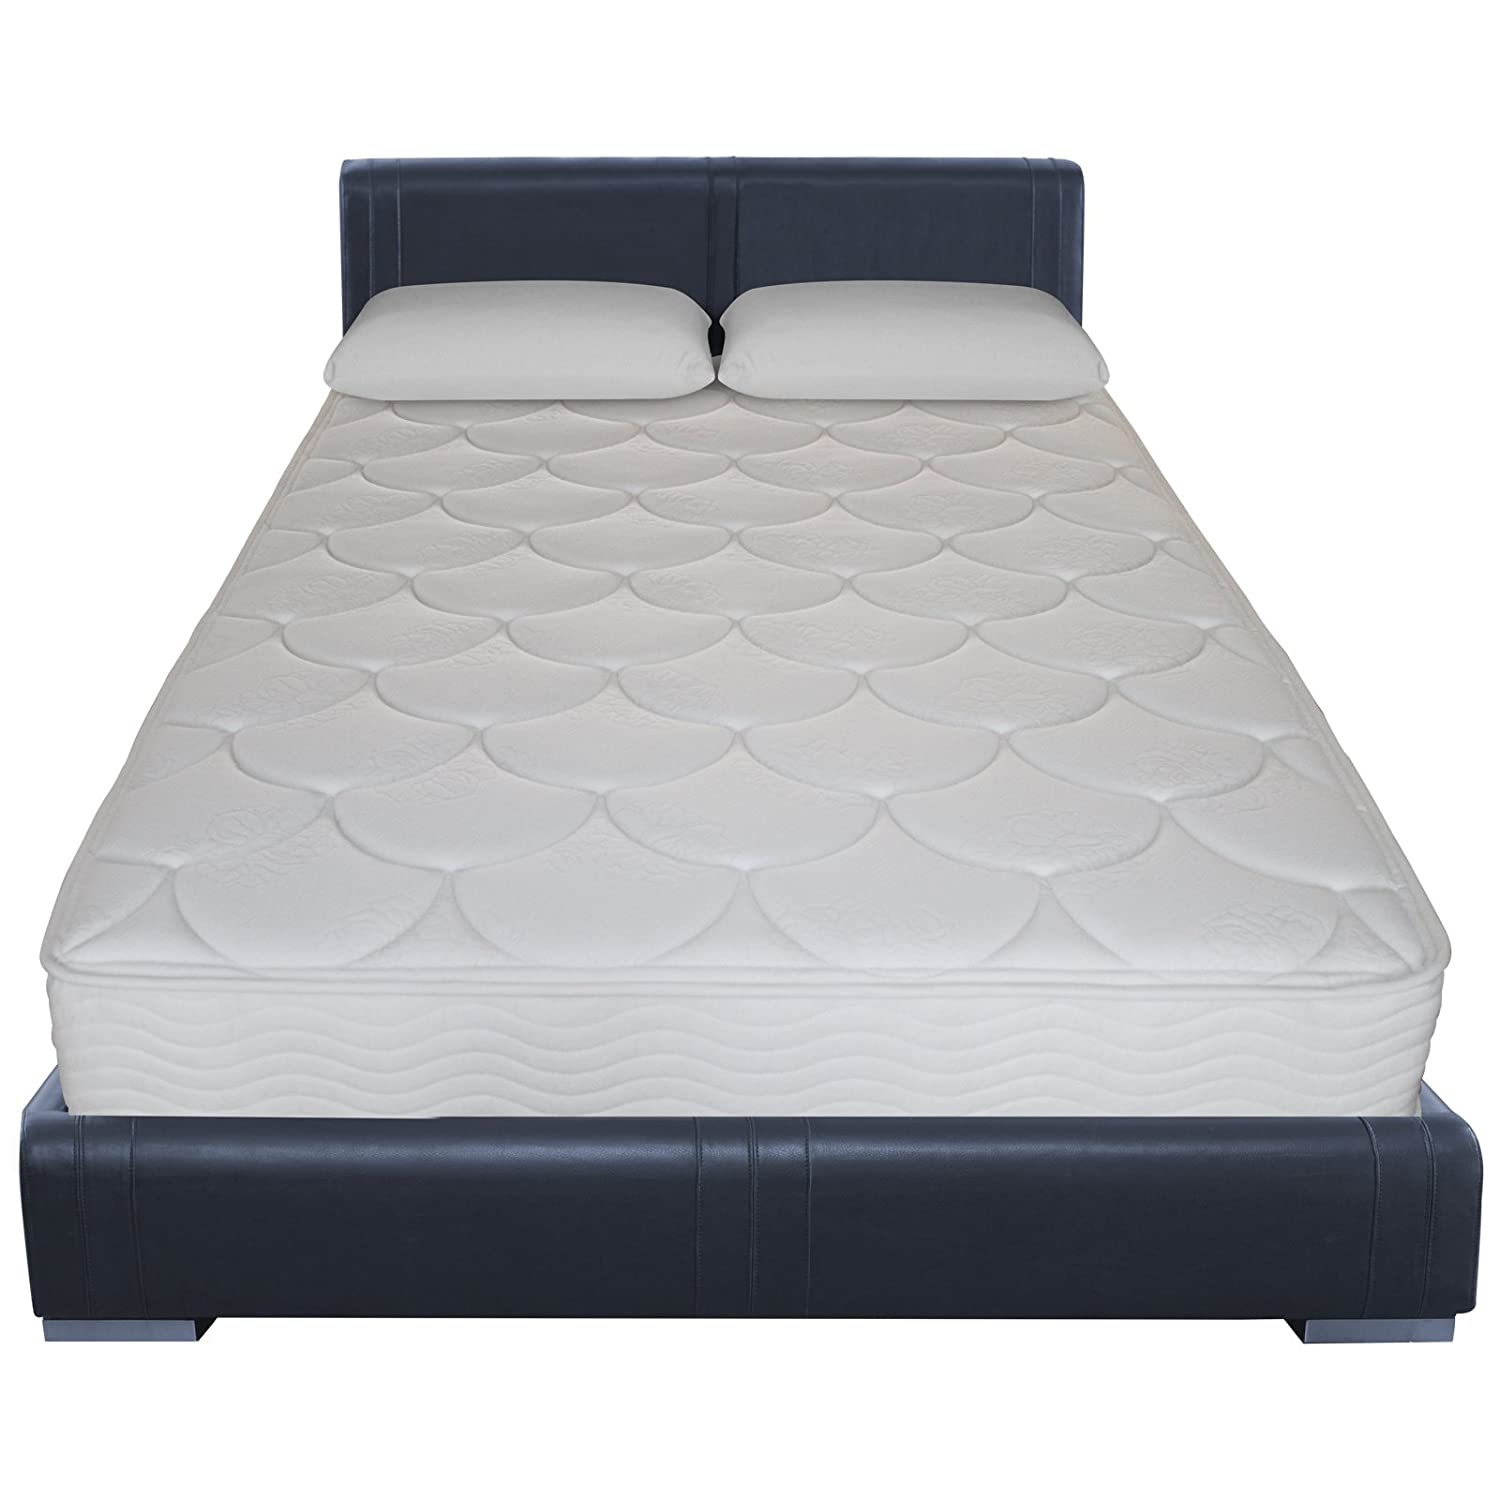 Amazon Sleep Master 8 Inch Tight Top Deluxe Individual